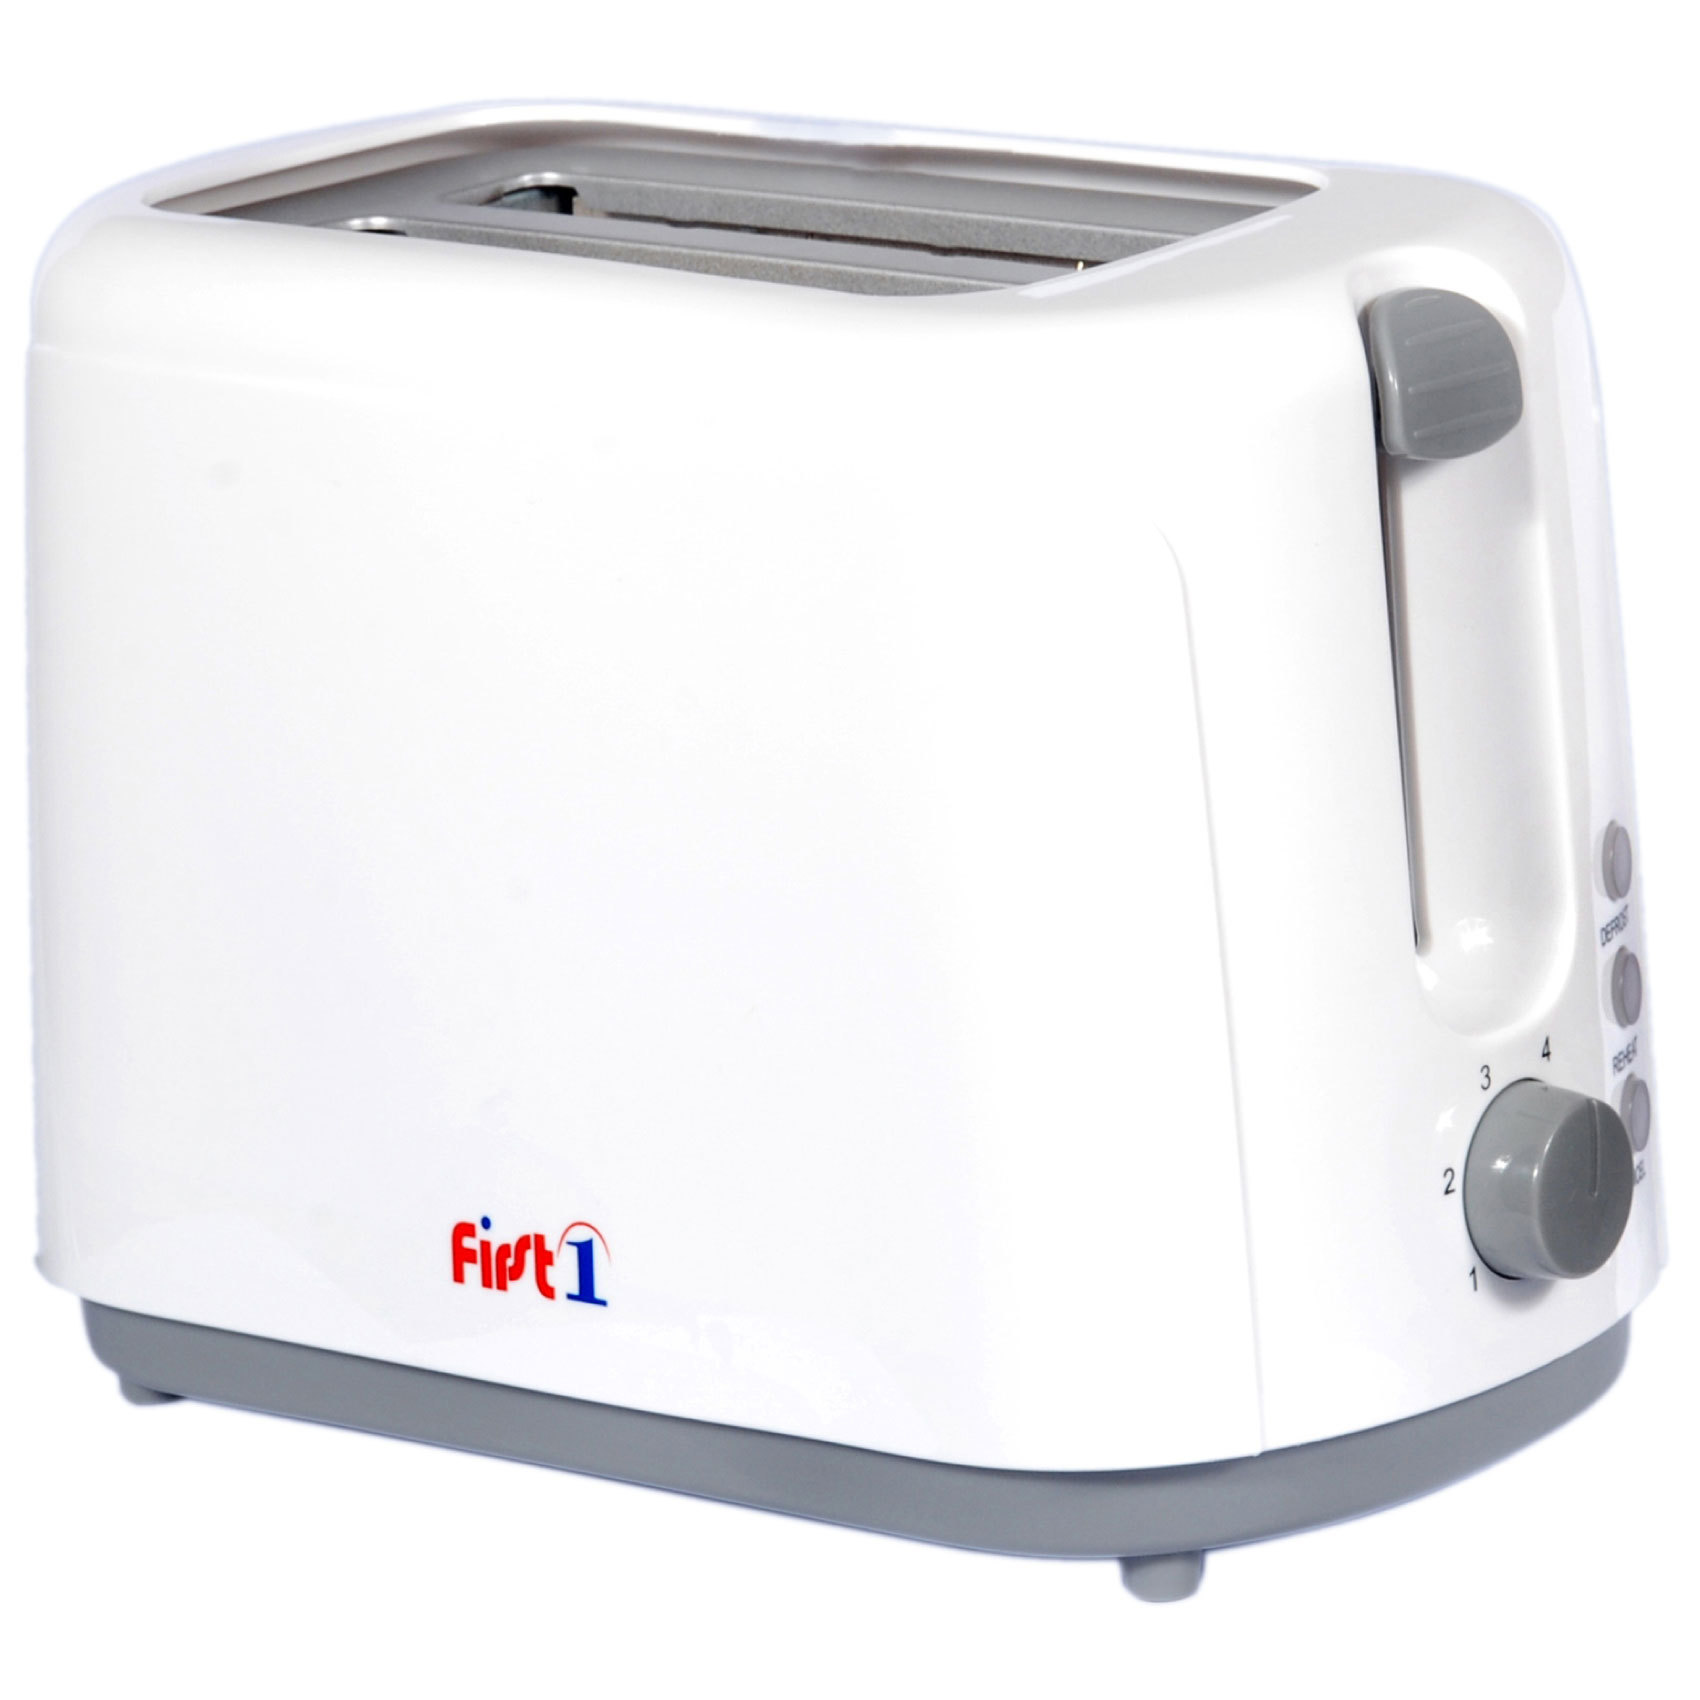 FIRST1 TOASTER FT-707